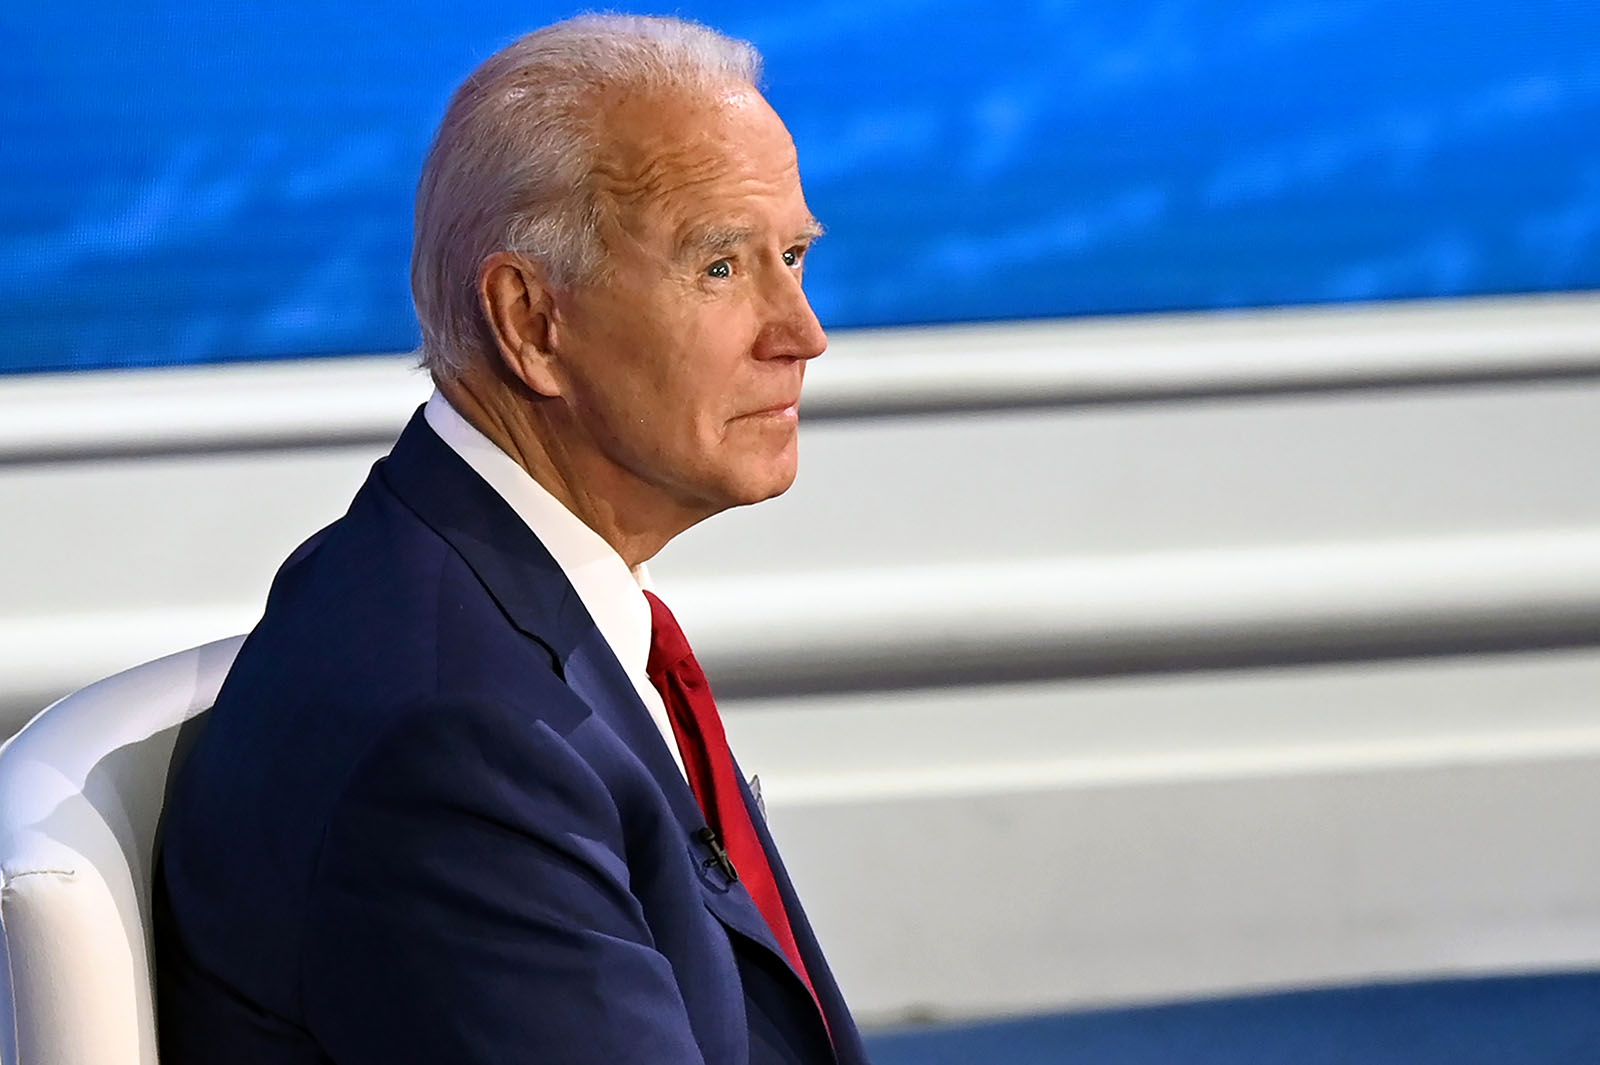 Democratic Presidential candidate Joe Biden participates in an ABC News town hall event at the National Constitution Center in Philadelphia on October 15.